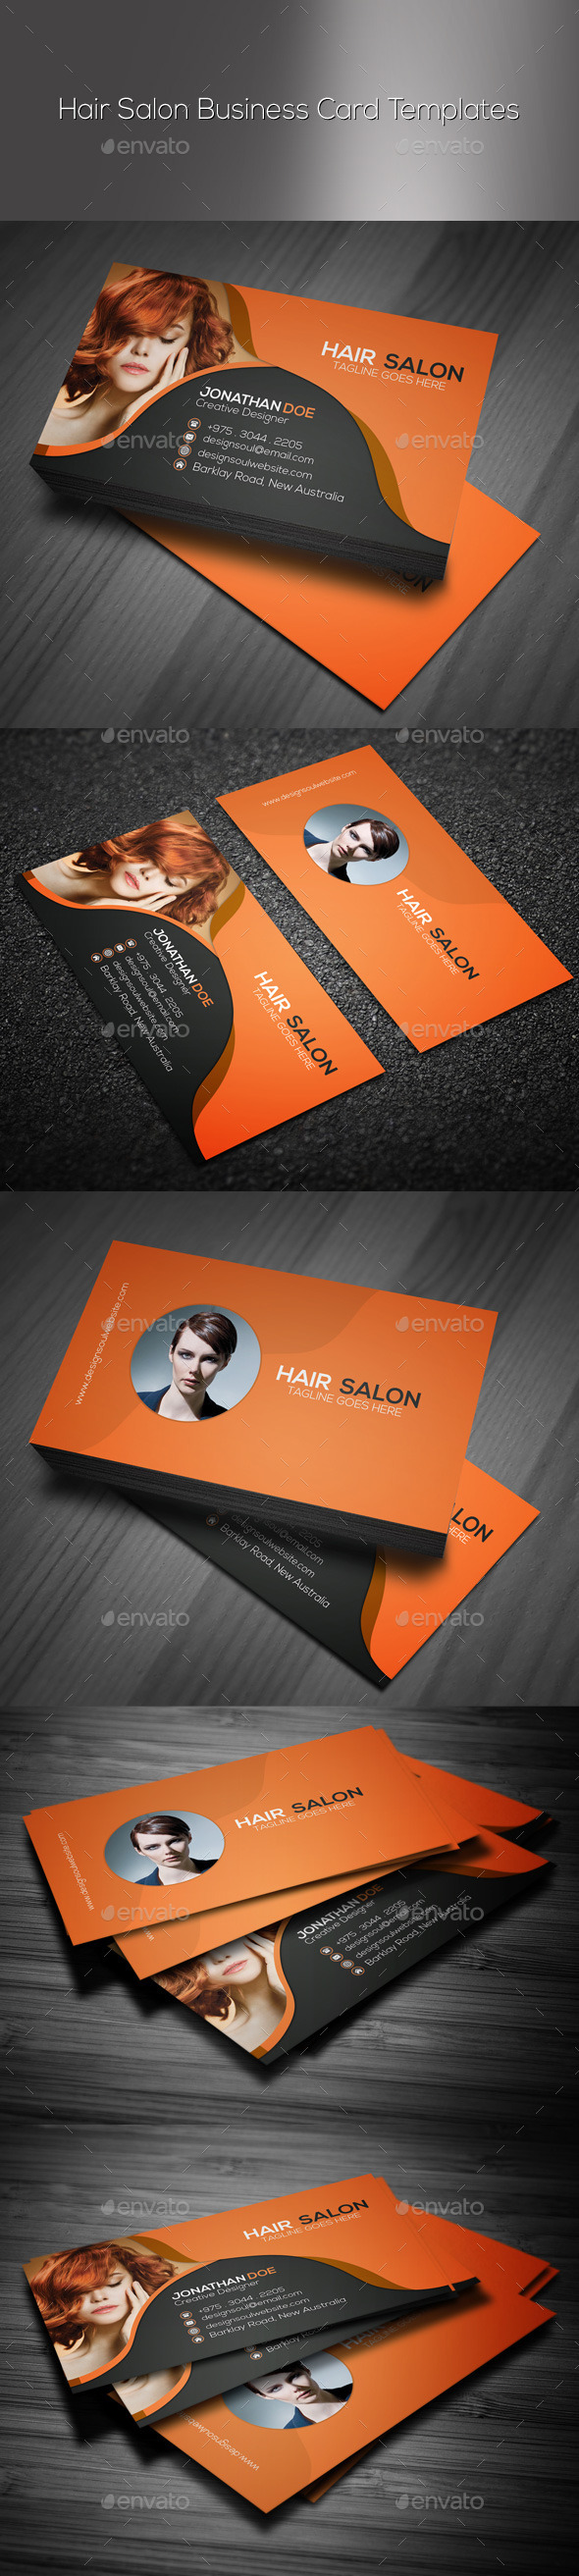 Hair salon business card by designsoul14 graphicriver hair salon business card industry specific business cards wajeb Choice Image